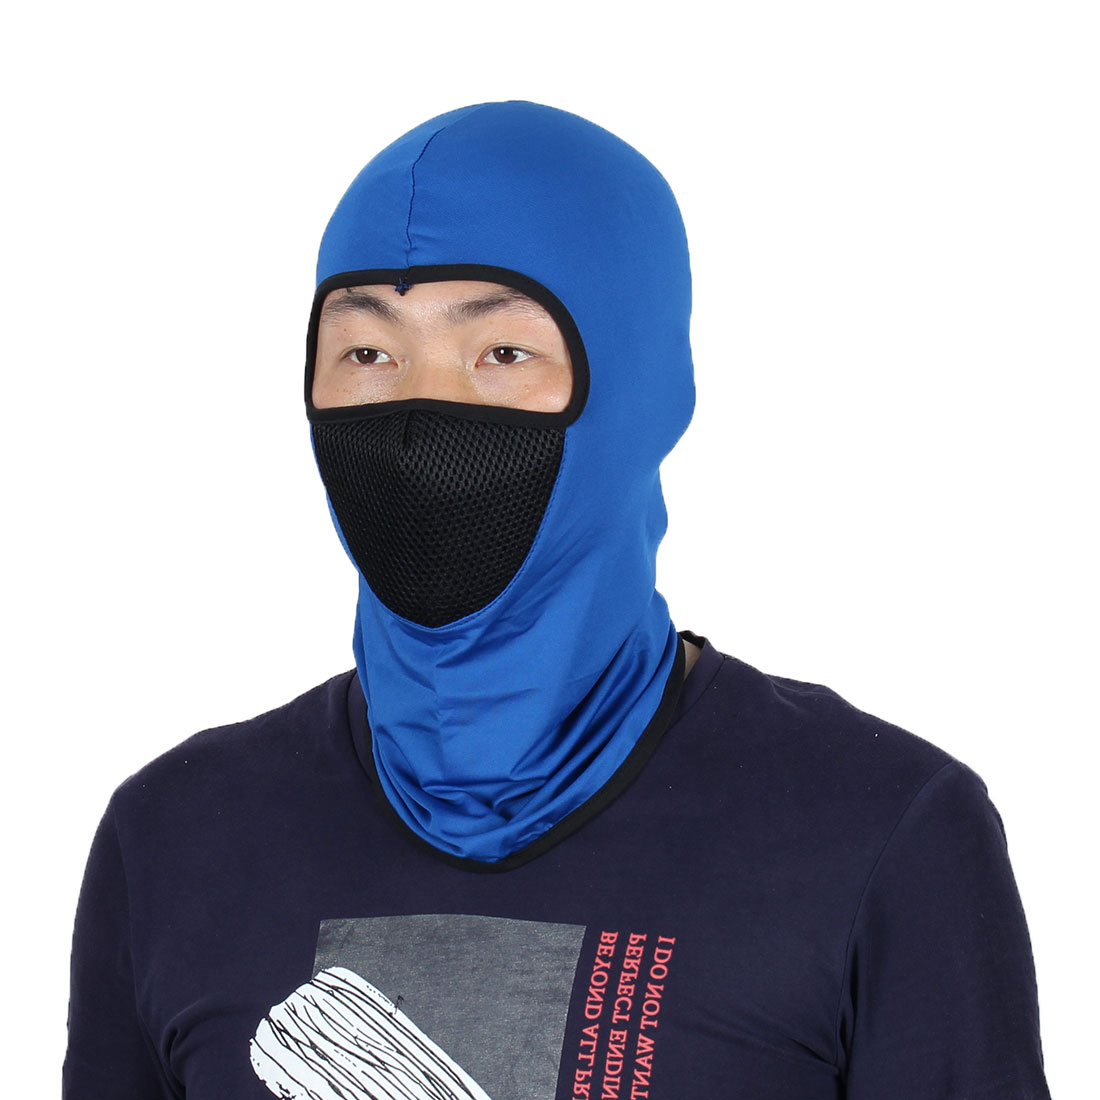 Full Face Mask Outdoor Cycling Neck Protector Hat Helmet Balaclava Dark Blue by Unique-Bargains